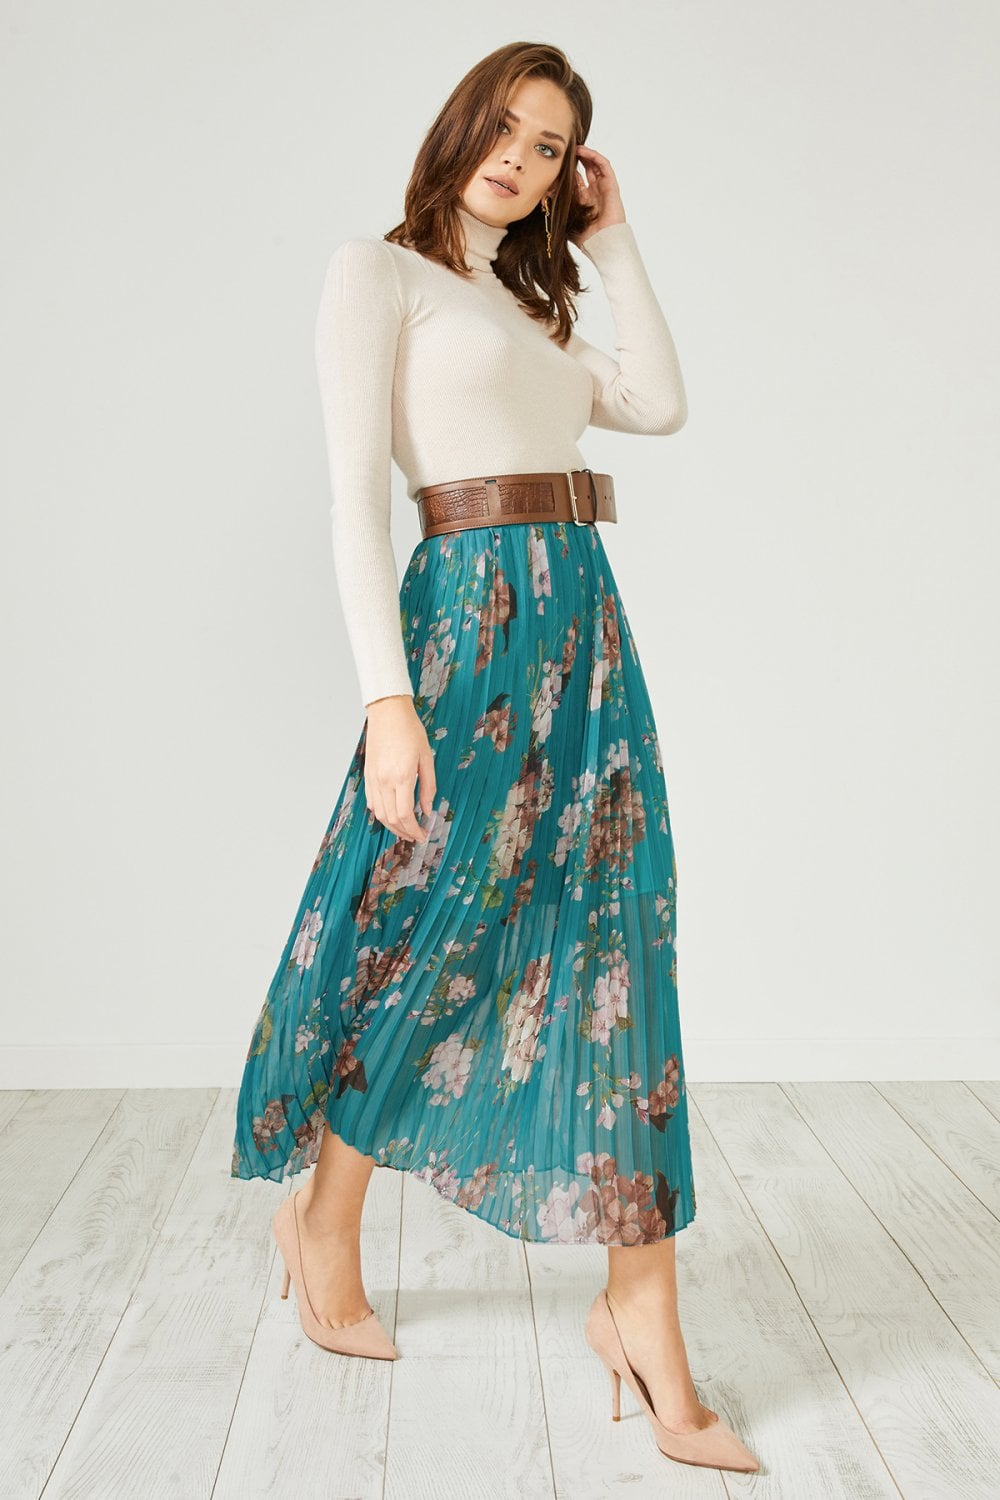 86f491efe Urban Touch Green Floral Pleated Midi Skirt - Urban Touch from Little  Mistress UK